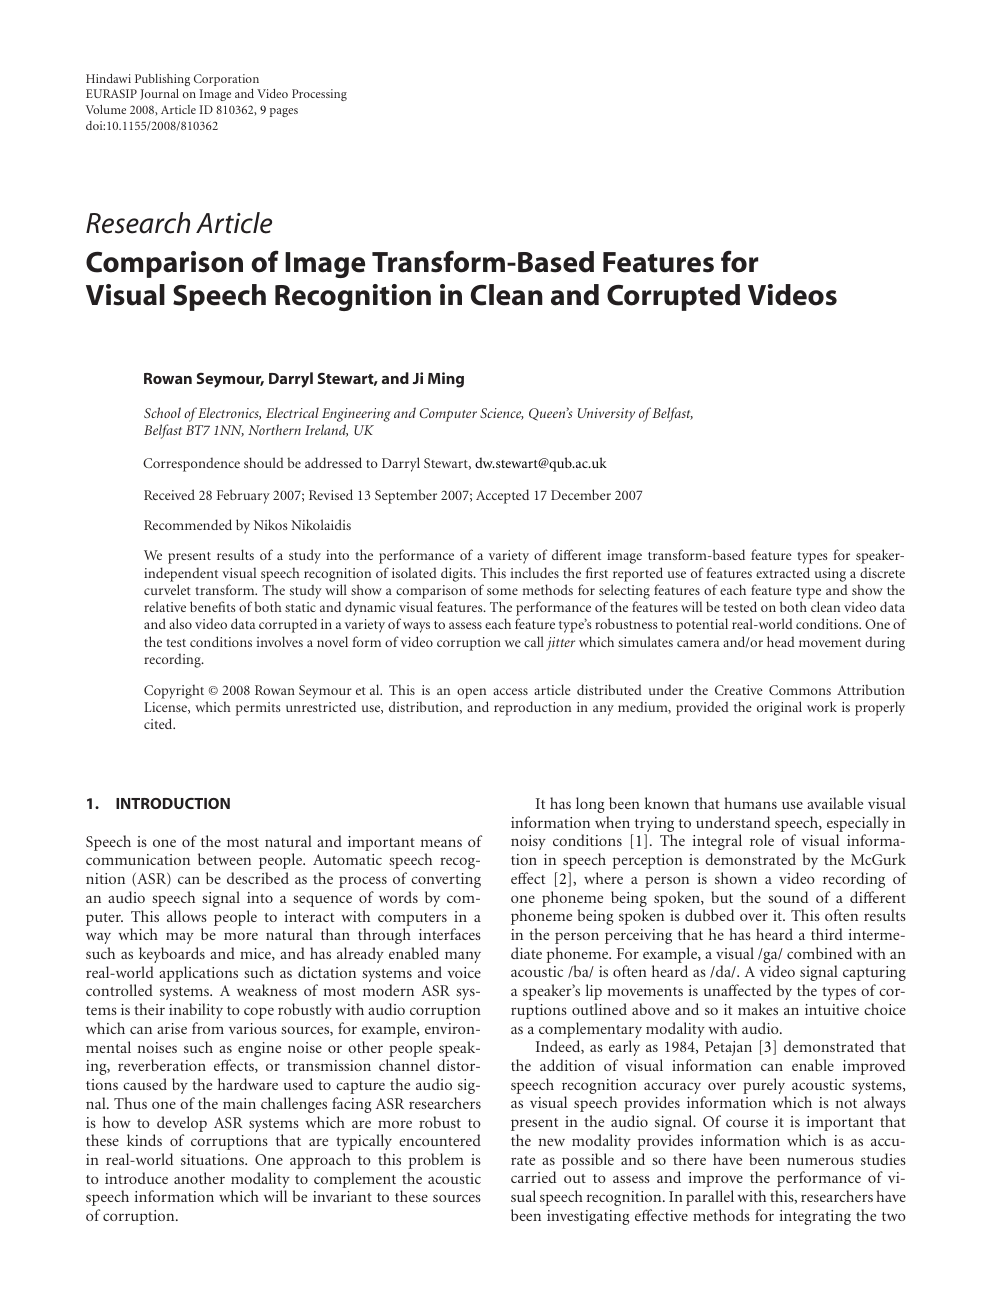 Comparison of Image Transform-Based Features for Visual